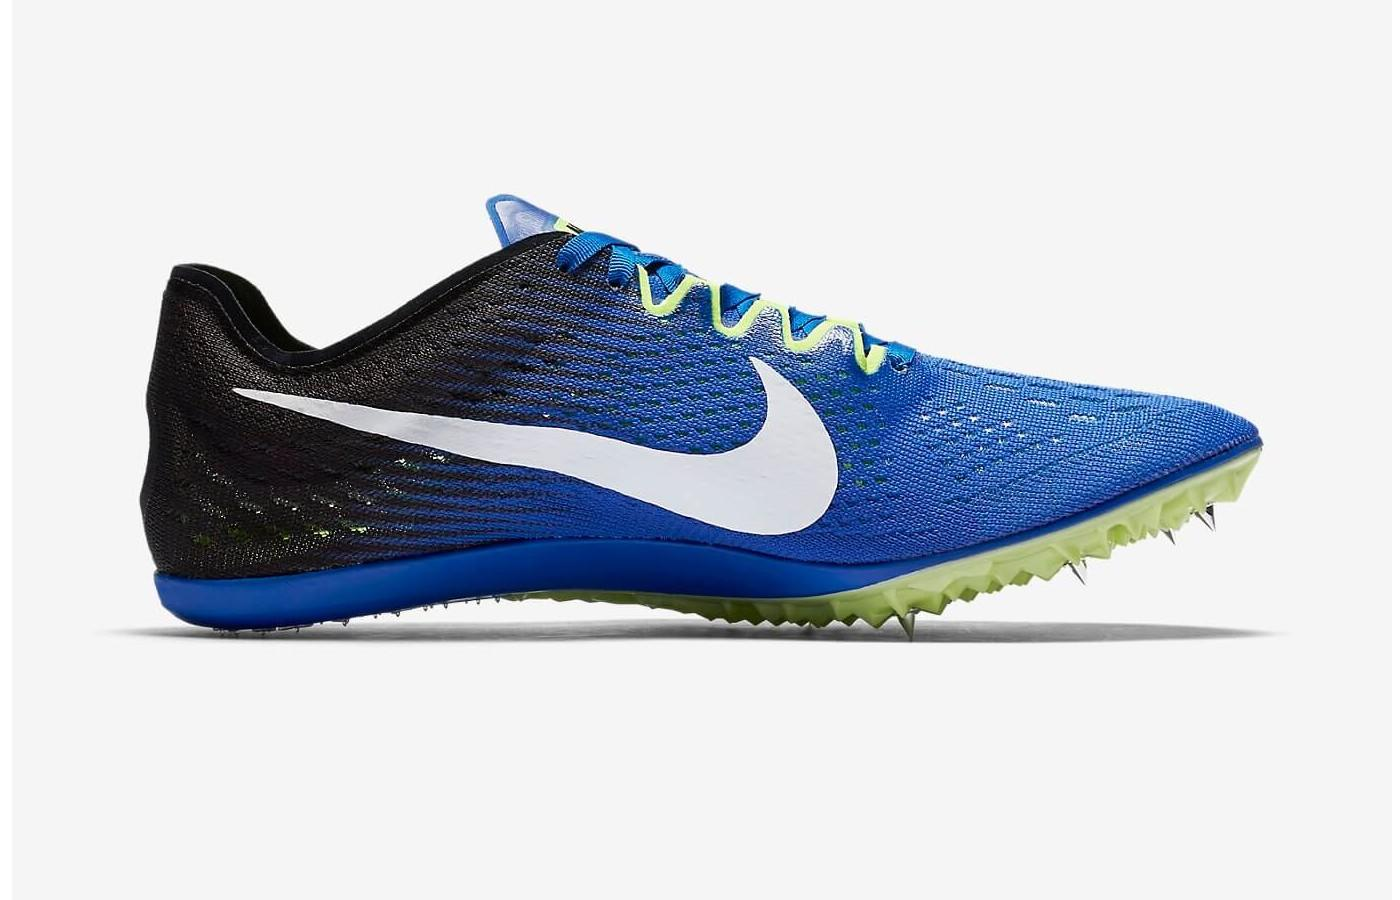 Six track spikes are embedded in the forefoot and arch of this running shoe.